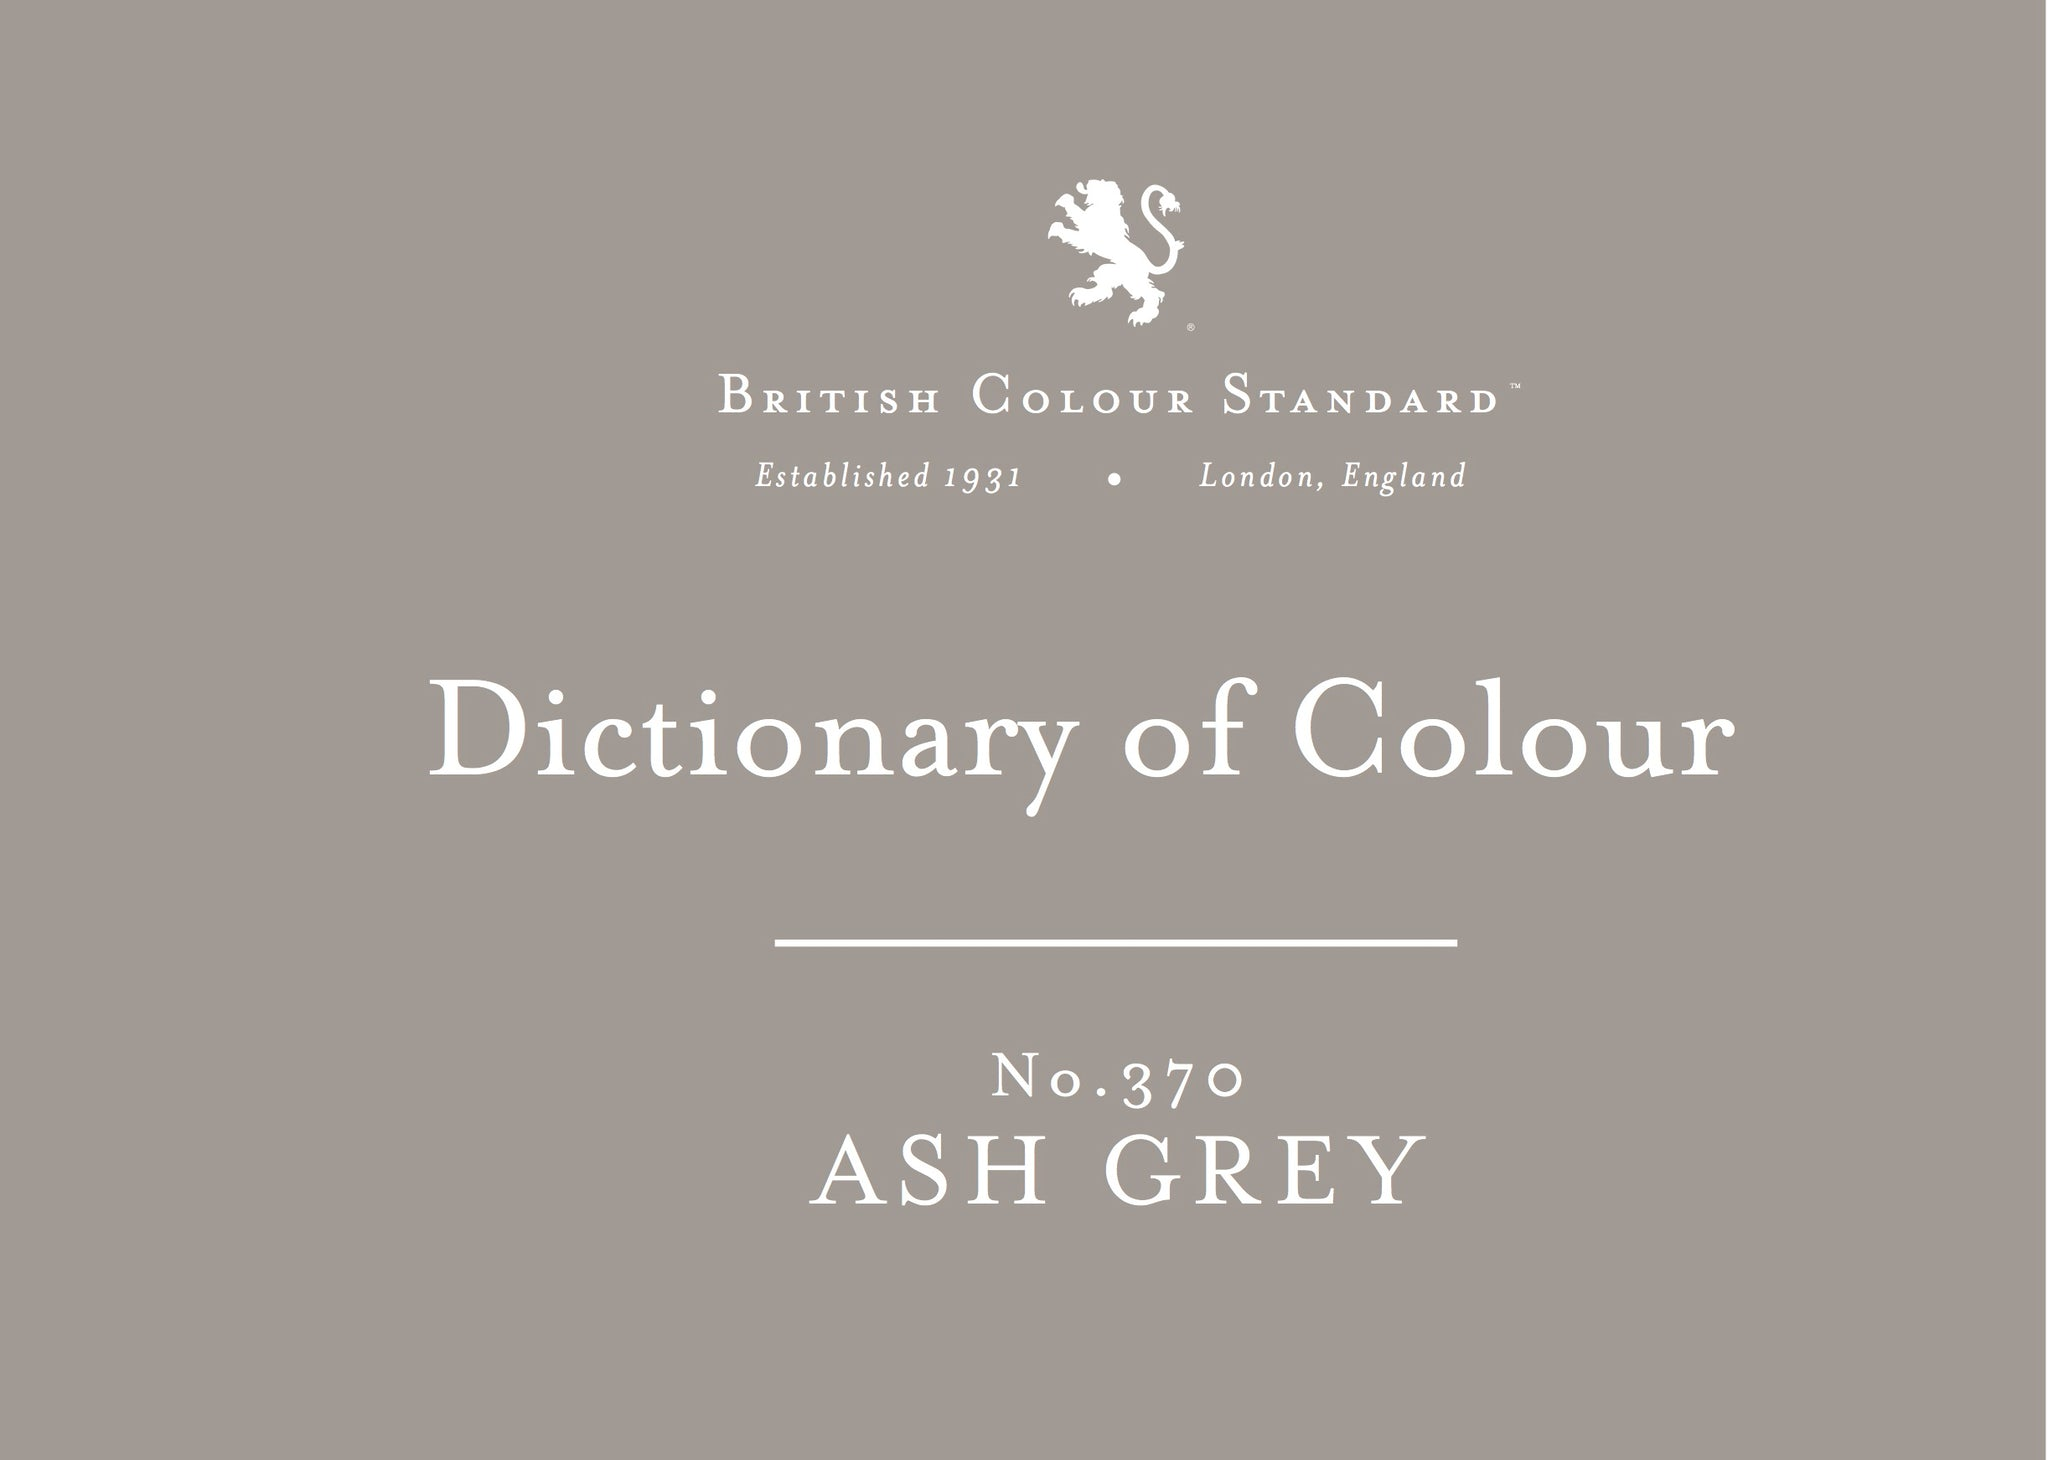 BRITISH COLOUR STANDARD - Ash Grey No.370